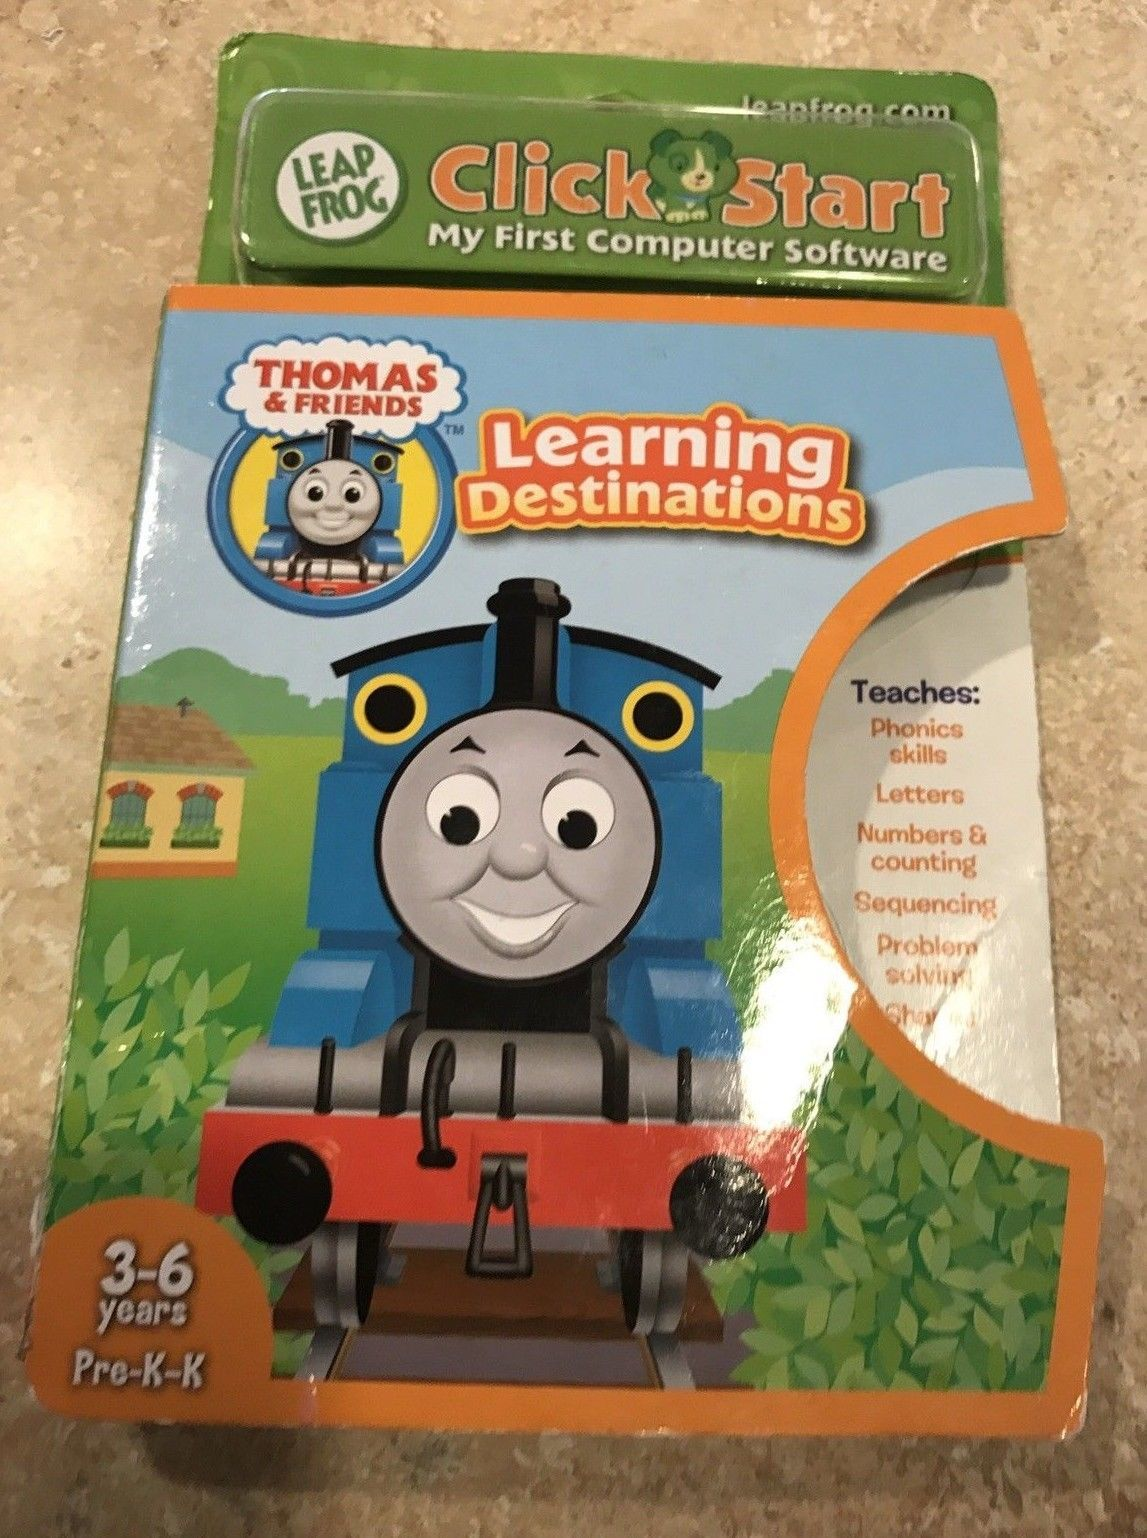 Leapfrog Click start My First Educational Software Thomas & Friends Computer NEW - $5.25